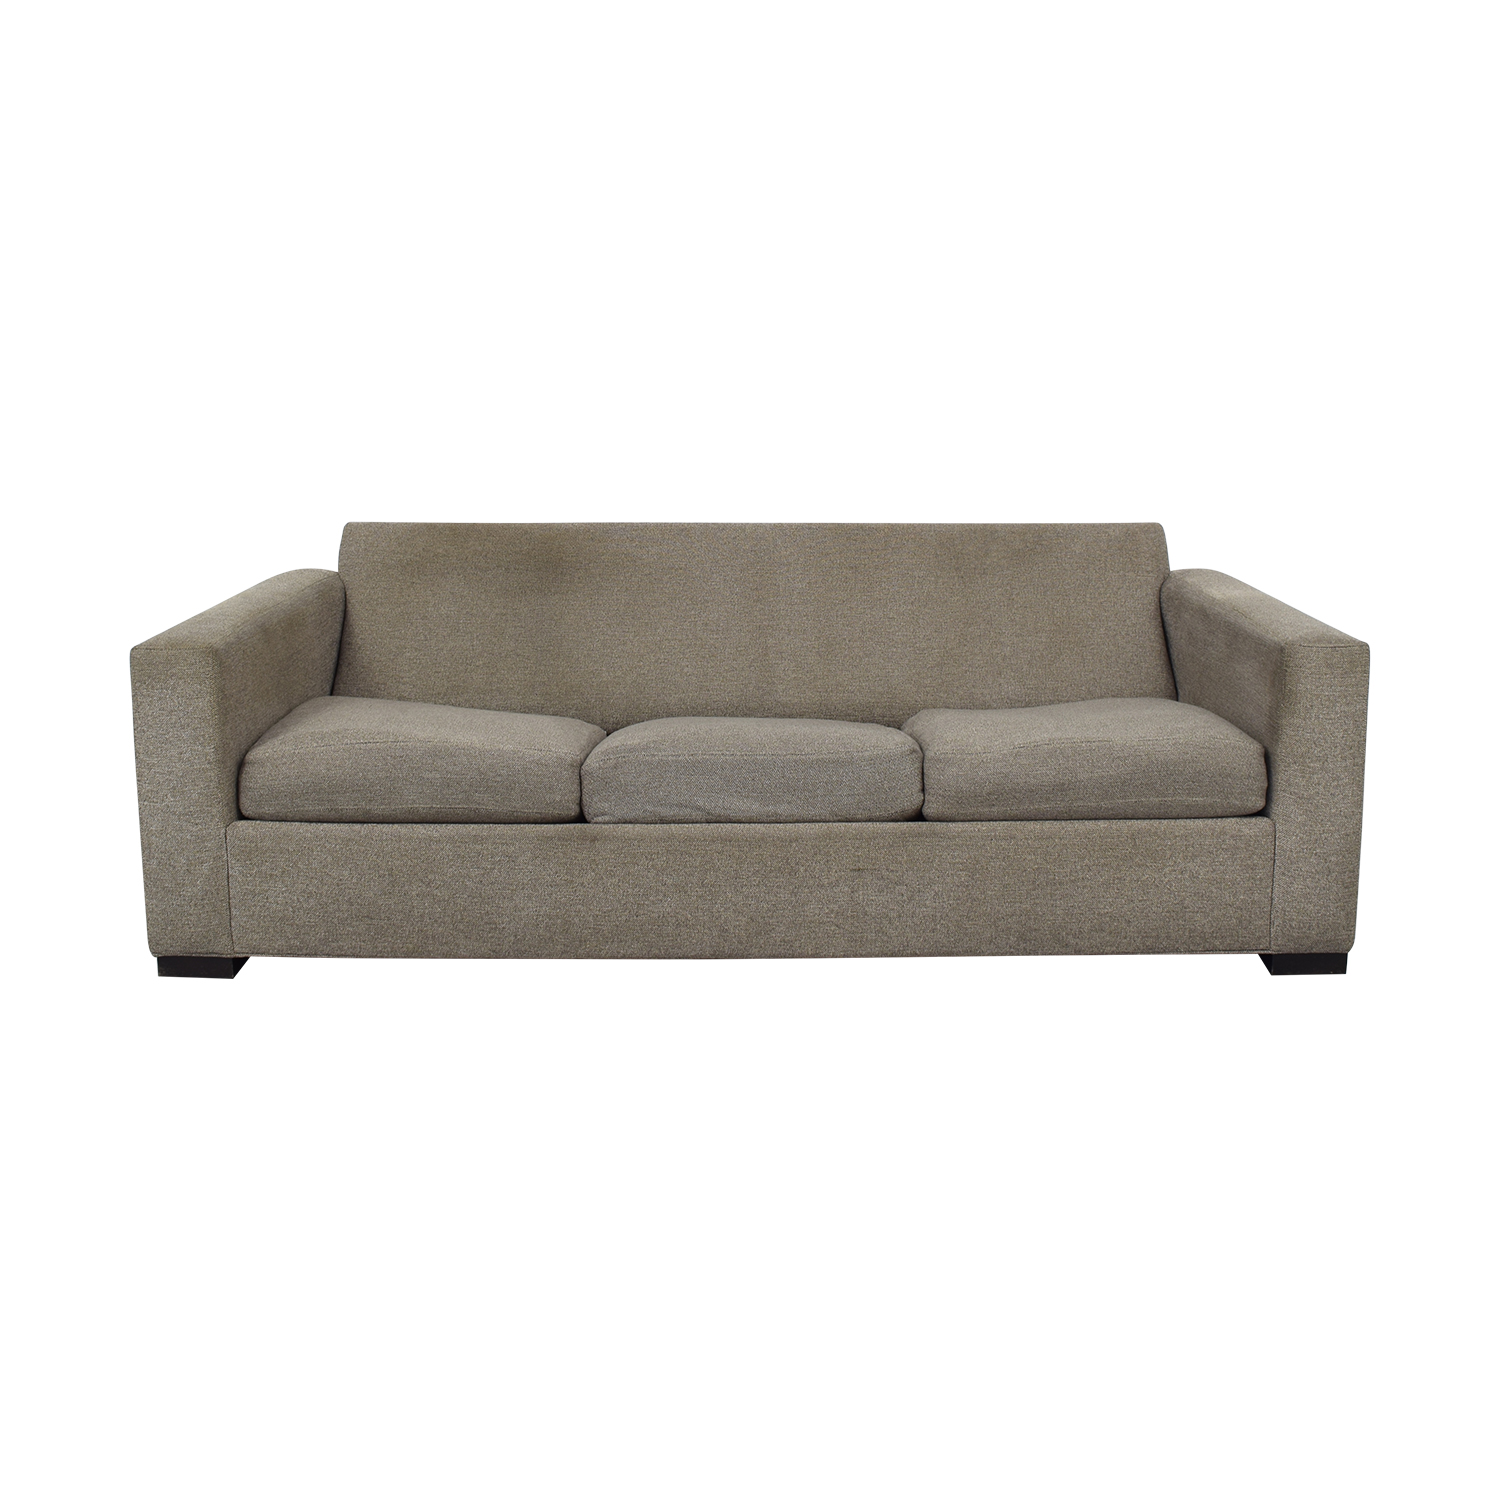 Room & Board York Sleeper Sofa / Sofas